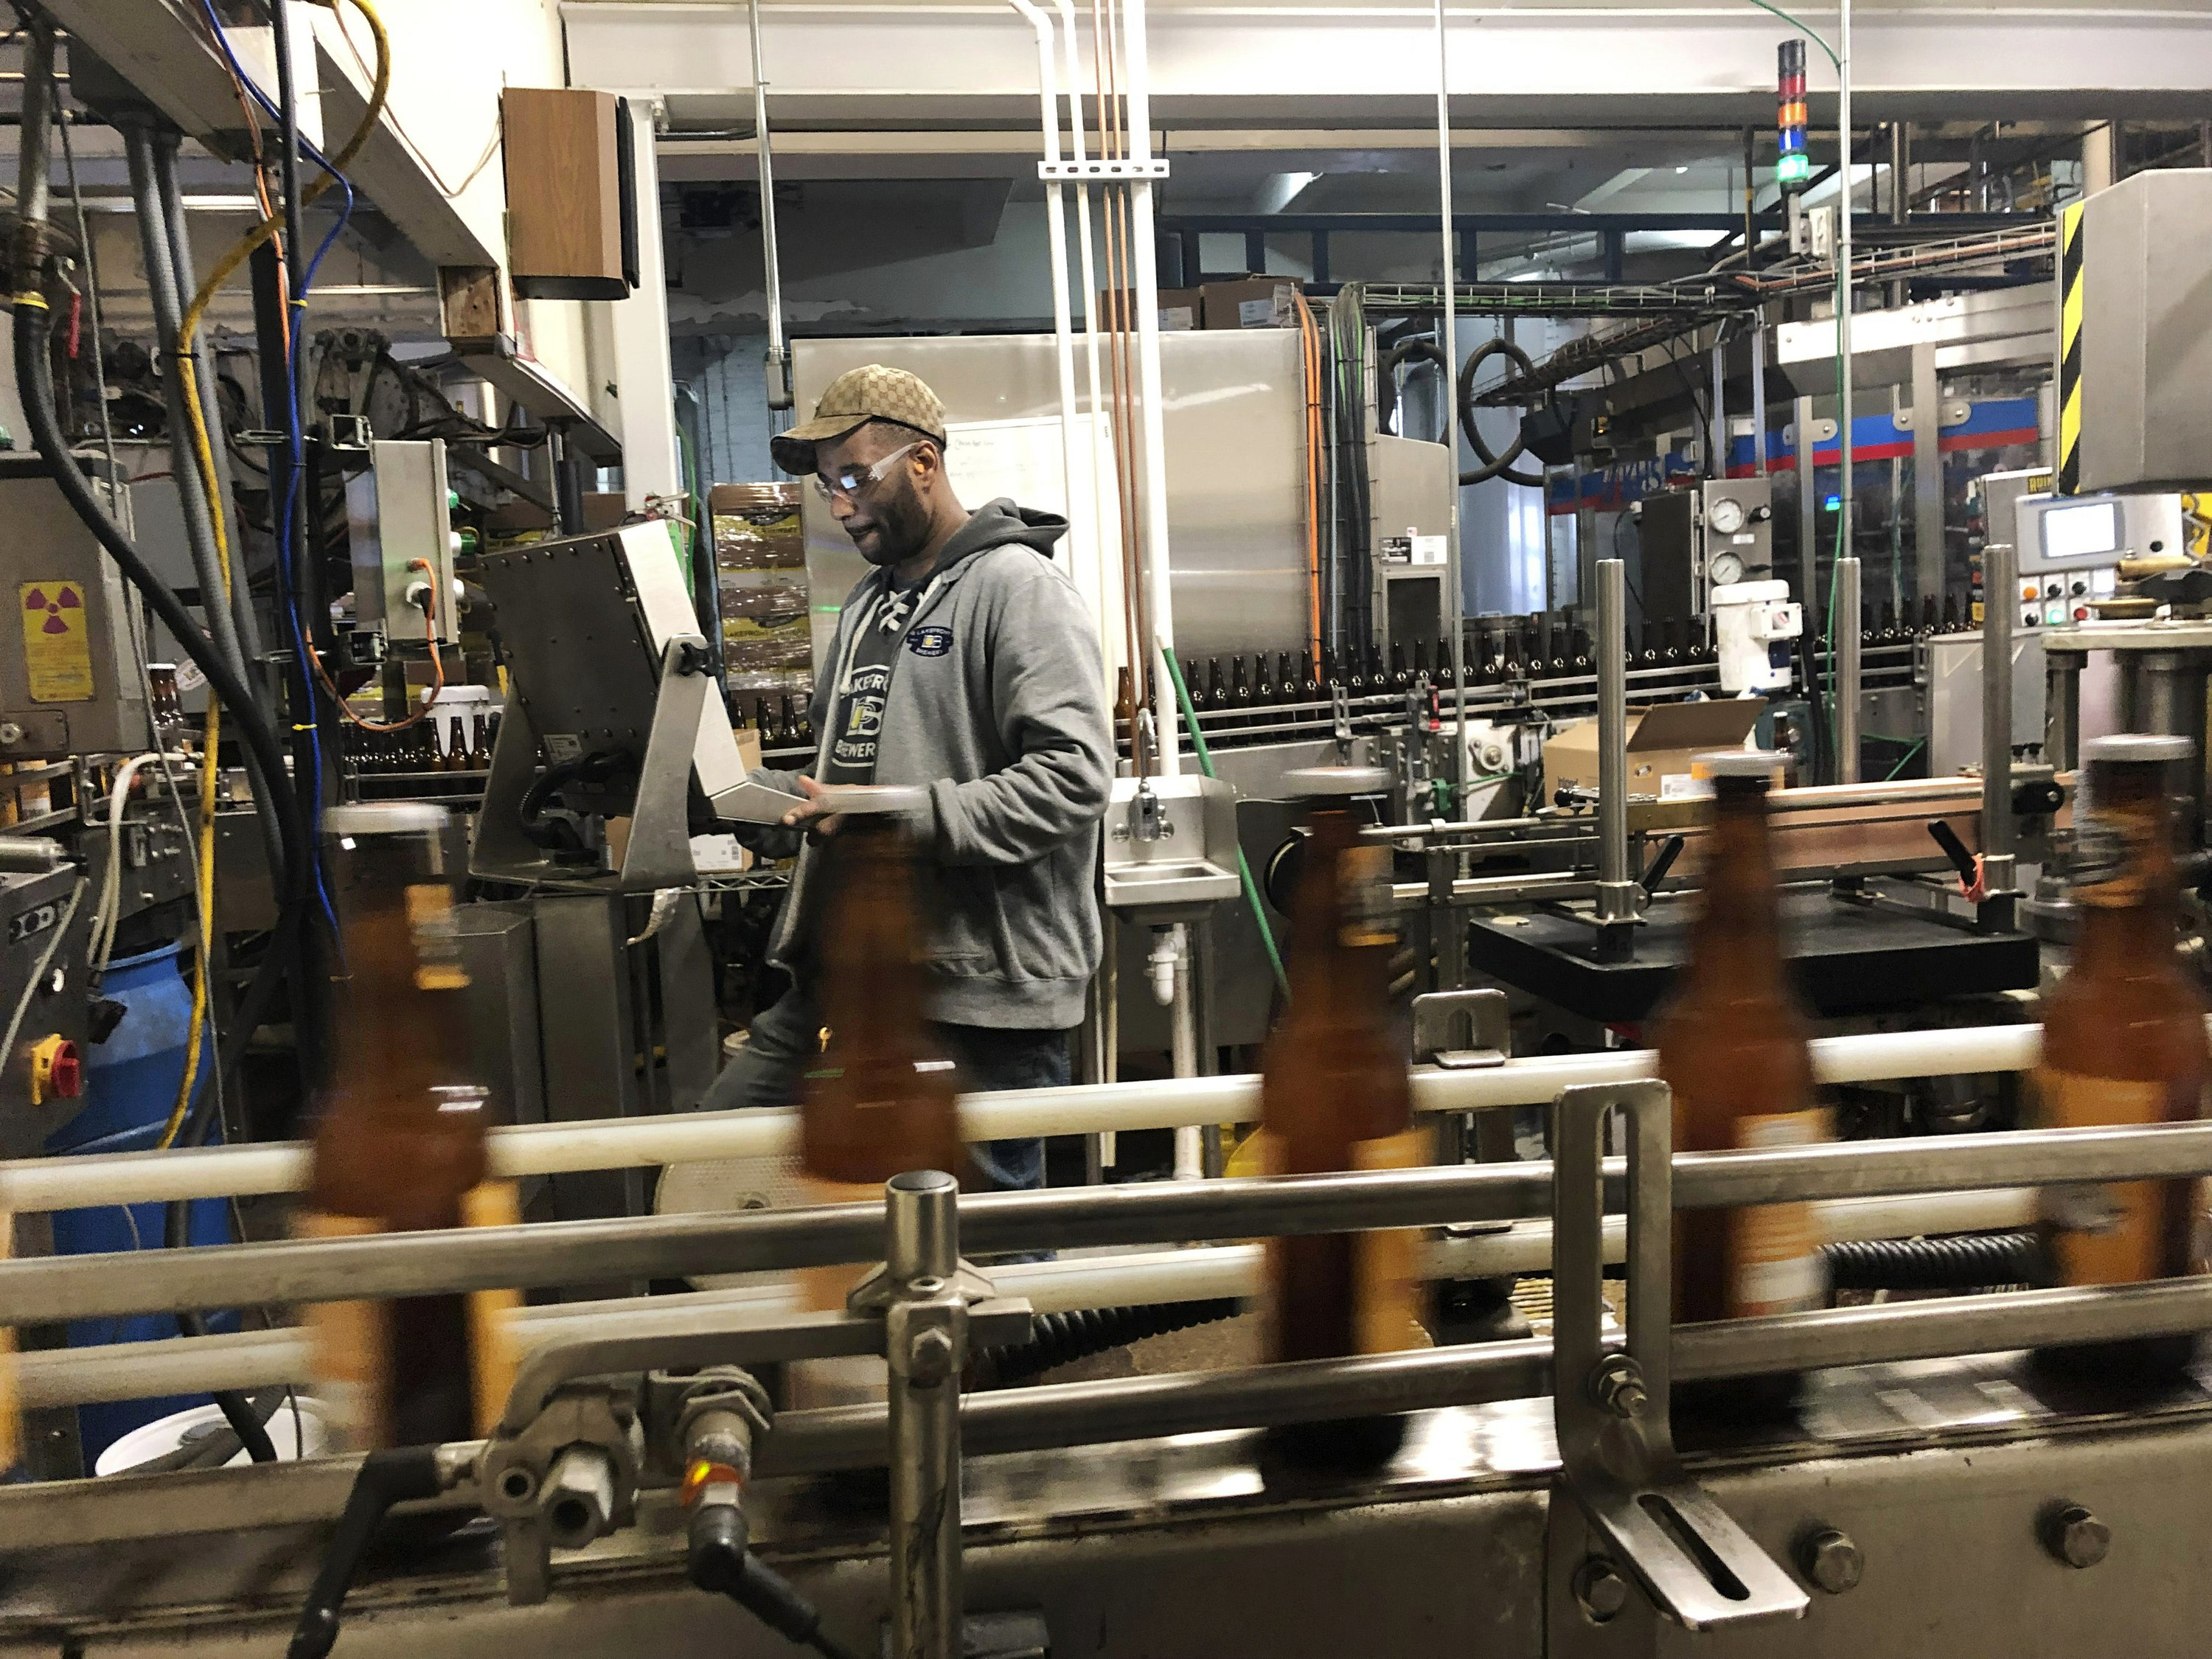 Craft beer taps squeezed as shutdown delays new releases - The Associated Press thumbnail